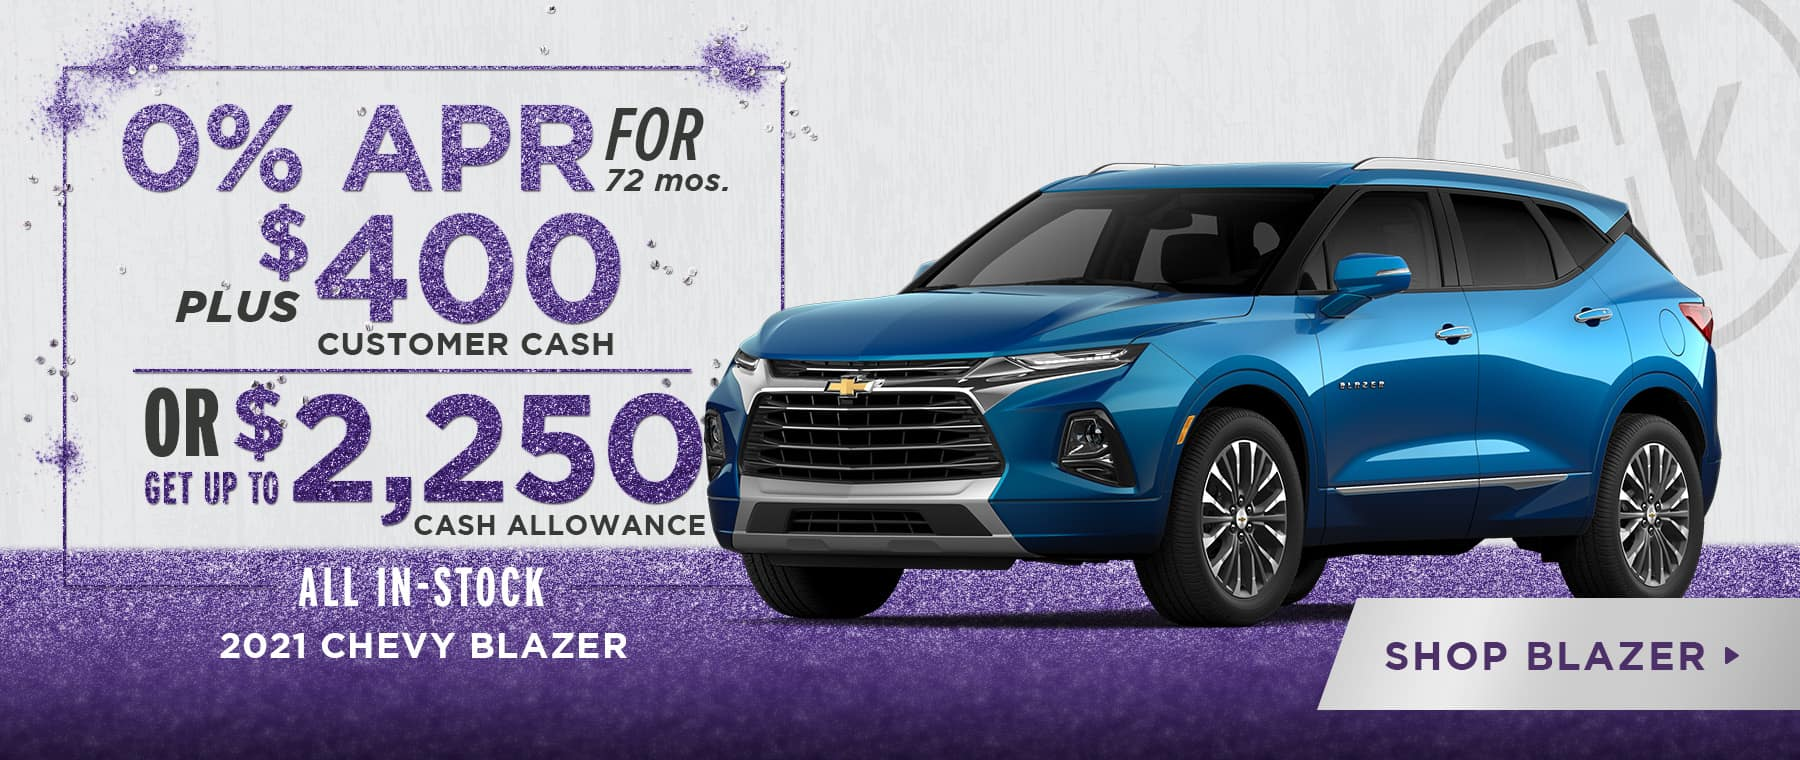 0% for 72 mos. PLUS $400 Customer Cash OR Get Up To $2,250 Cash Allowance 2021 Blazer